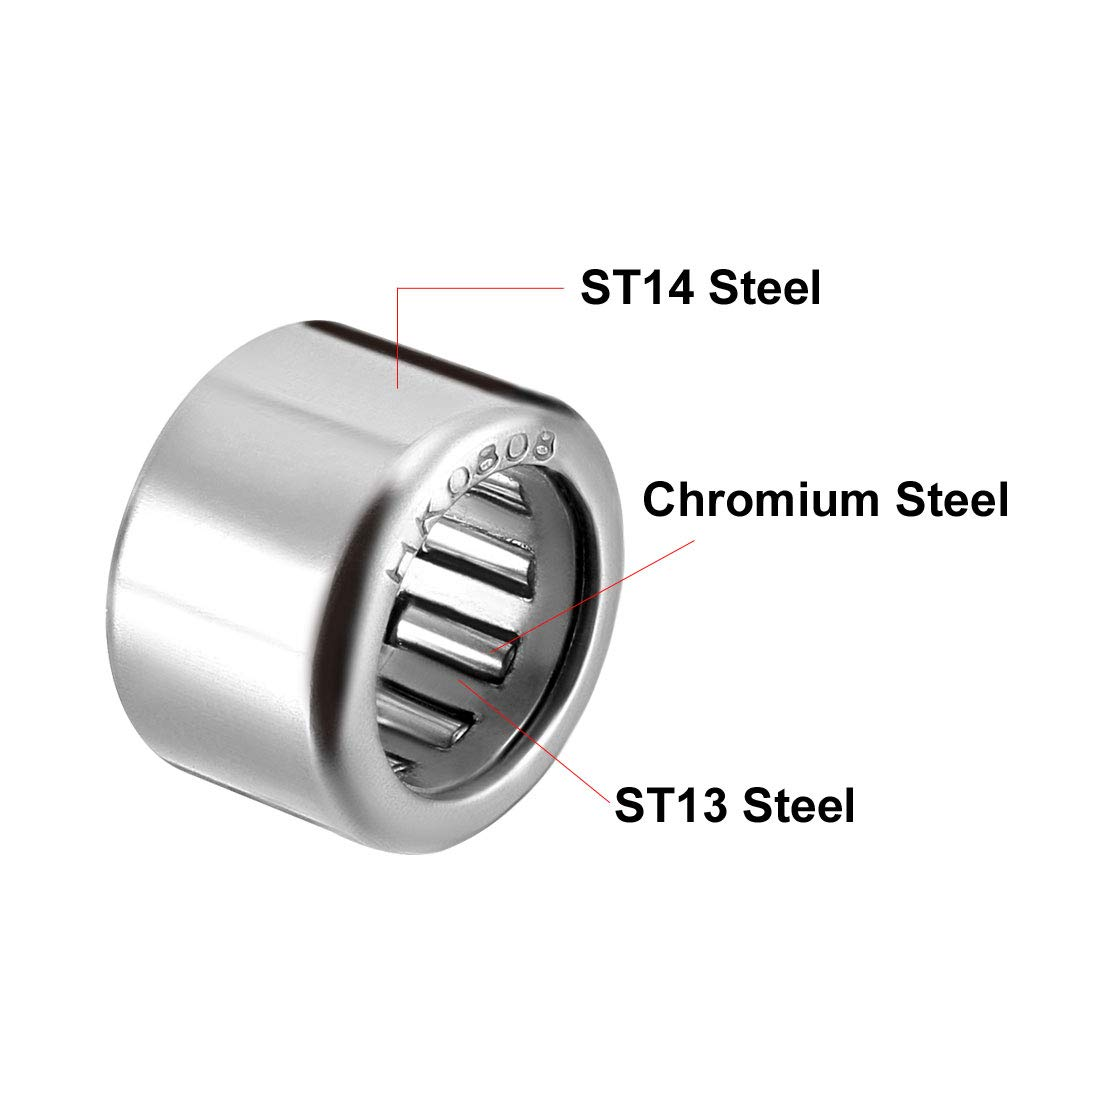 uxcell HK1012 Drawn Cup Needle Roller Bearings Open End 12mm Width 14mm OD 10mm Bore Dia Pack of 5